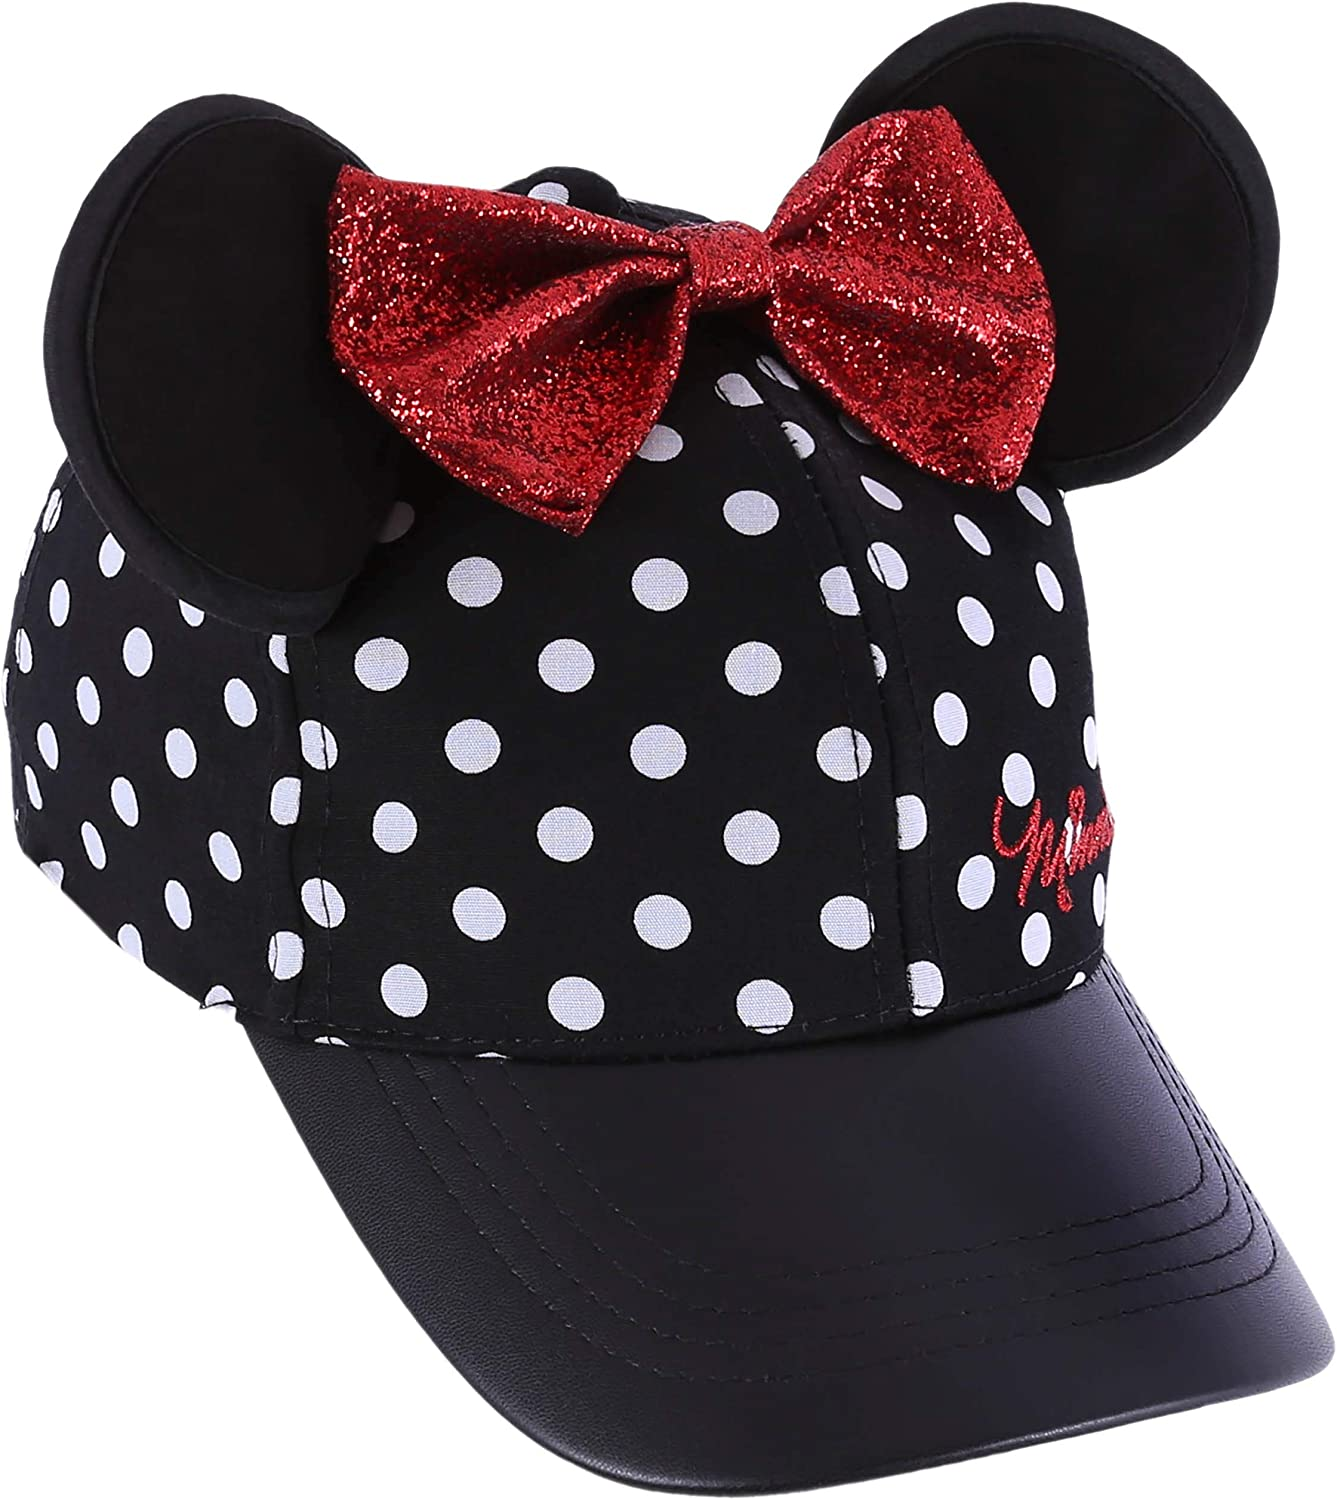 Minnie Mouse -:- Disney -:- Gorra 7-10 Años: Amazon.es: Ropa y ...